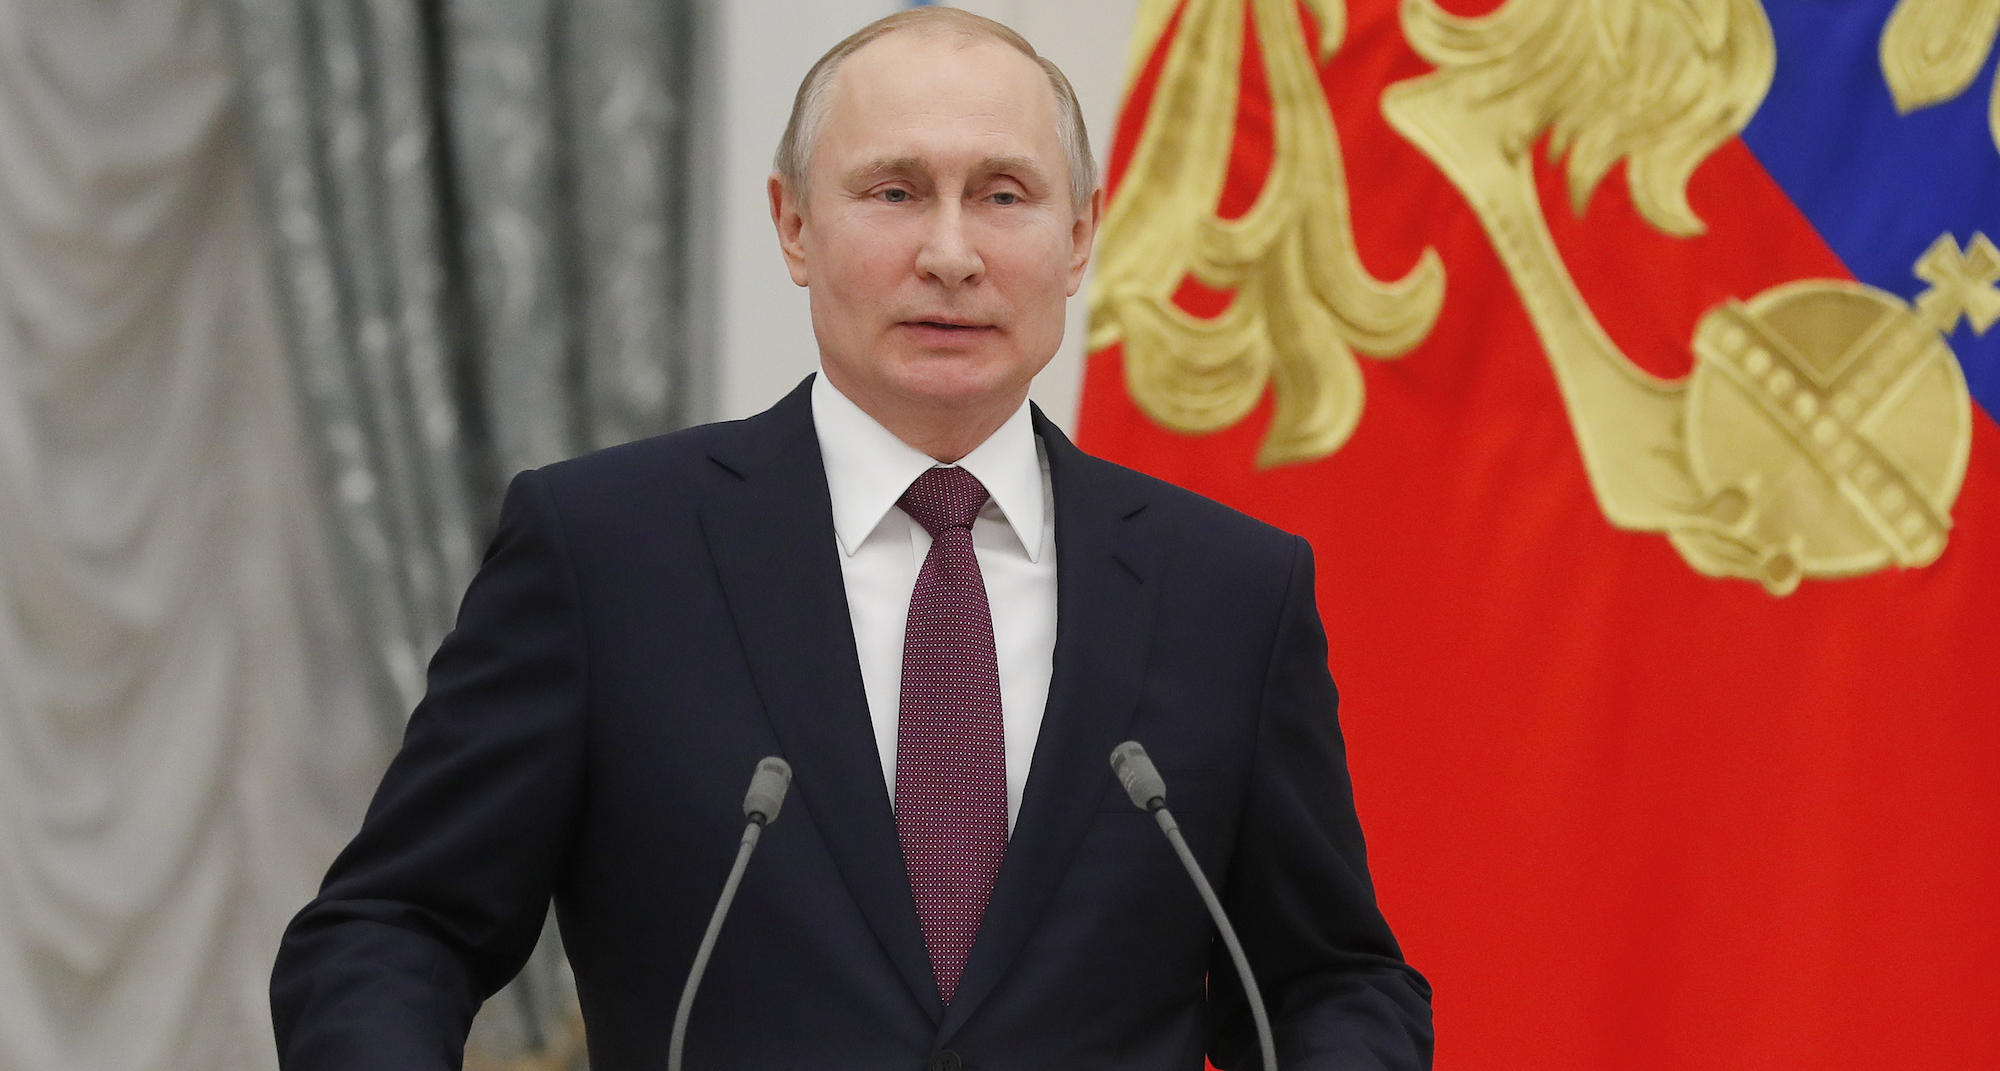 United States  imposes new sanctions on some Russian leaders, entities